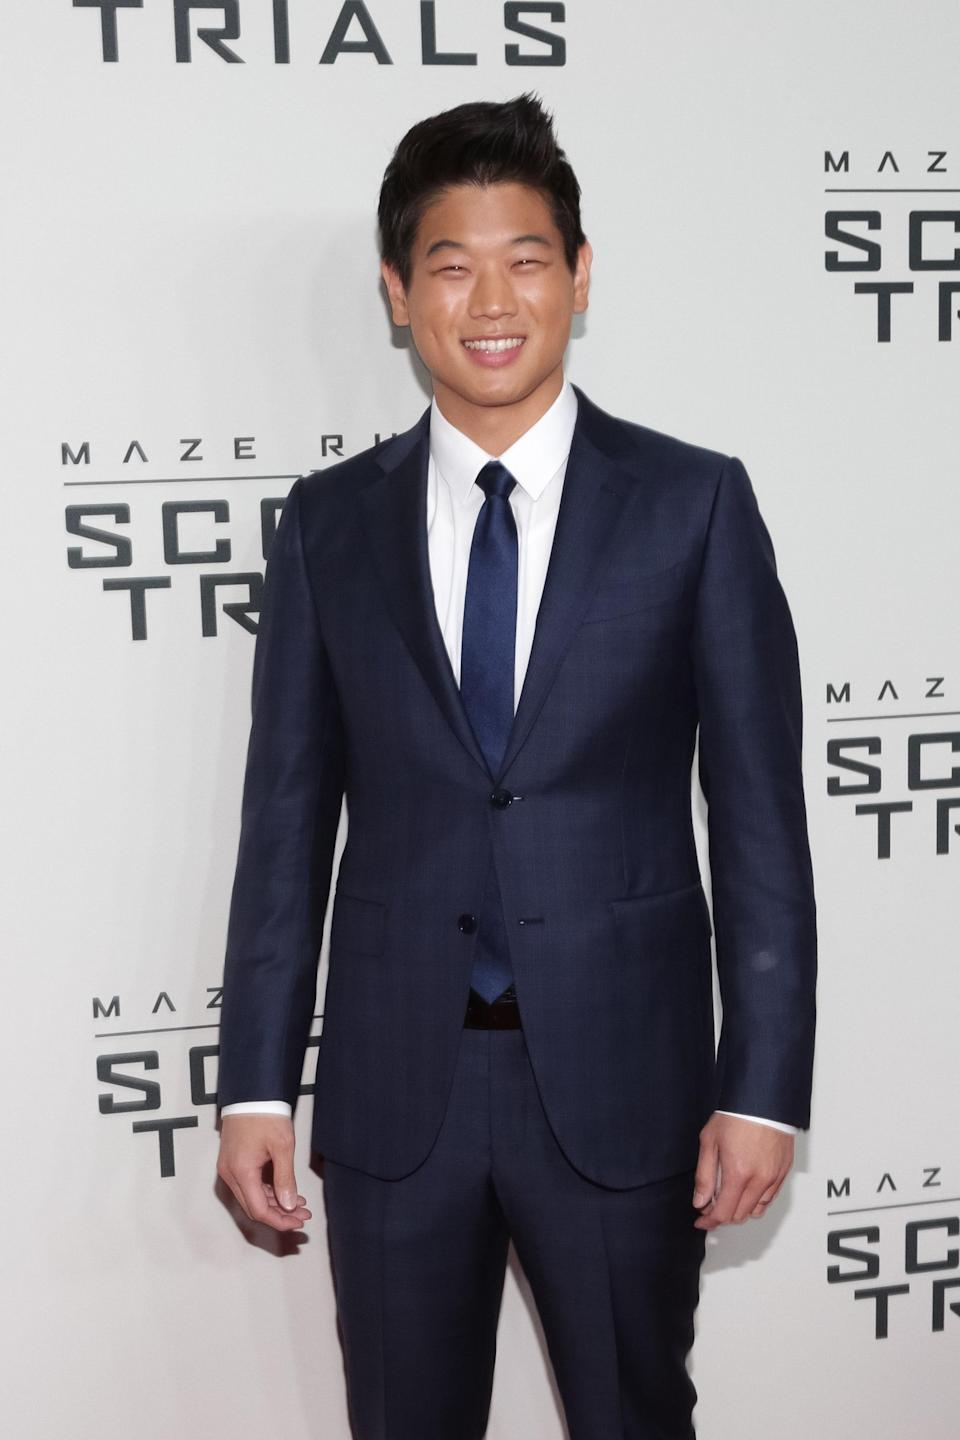 """Aside from his starring role in the <em><a href=""""https://www.teenvogue.com/tag/maze%20runner?mbid=synd_yahoo_rss"""" rel=""""nofollow noopener"""" target=""""_blank"""" data-ylk=""""slk:Maze Runner"""" class=""""link rapid-noclick-resp"""">Maze Runner</a></em> series alongside Dylan O'Brien, you may recognize the Korean-American actor from the hit Netflix series <em>Unbreakable Kimmy Schmidt</em>. Whether he's freaking you out or making you laugh, there's nothing better than an actor who can take on a range of different roles."""